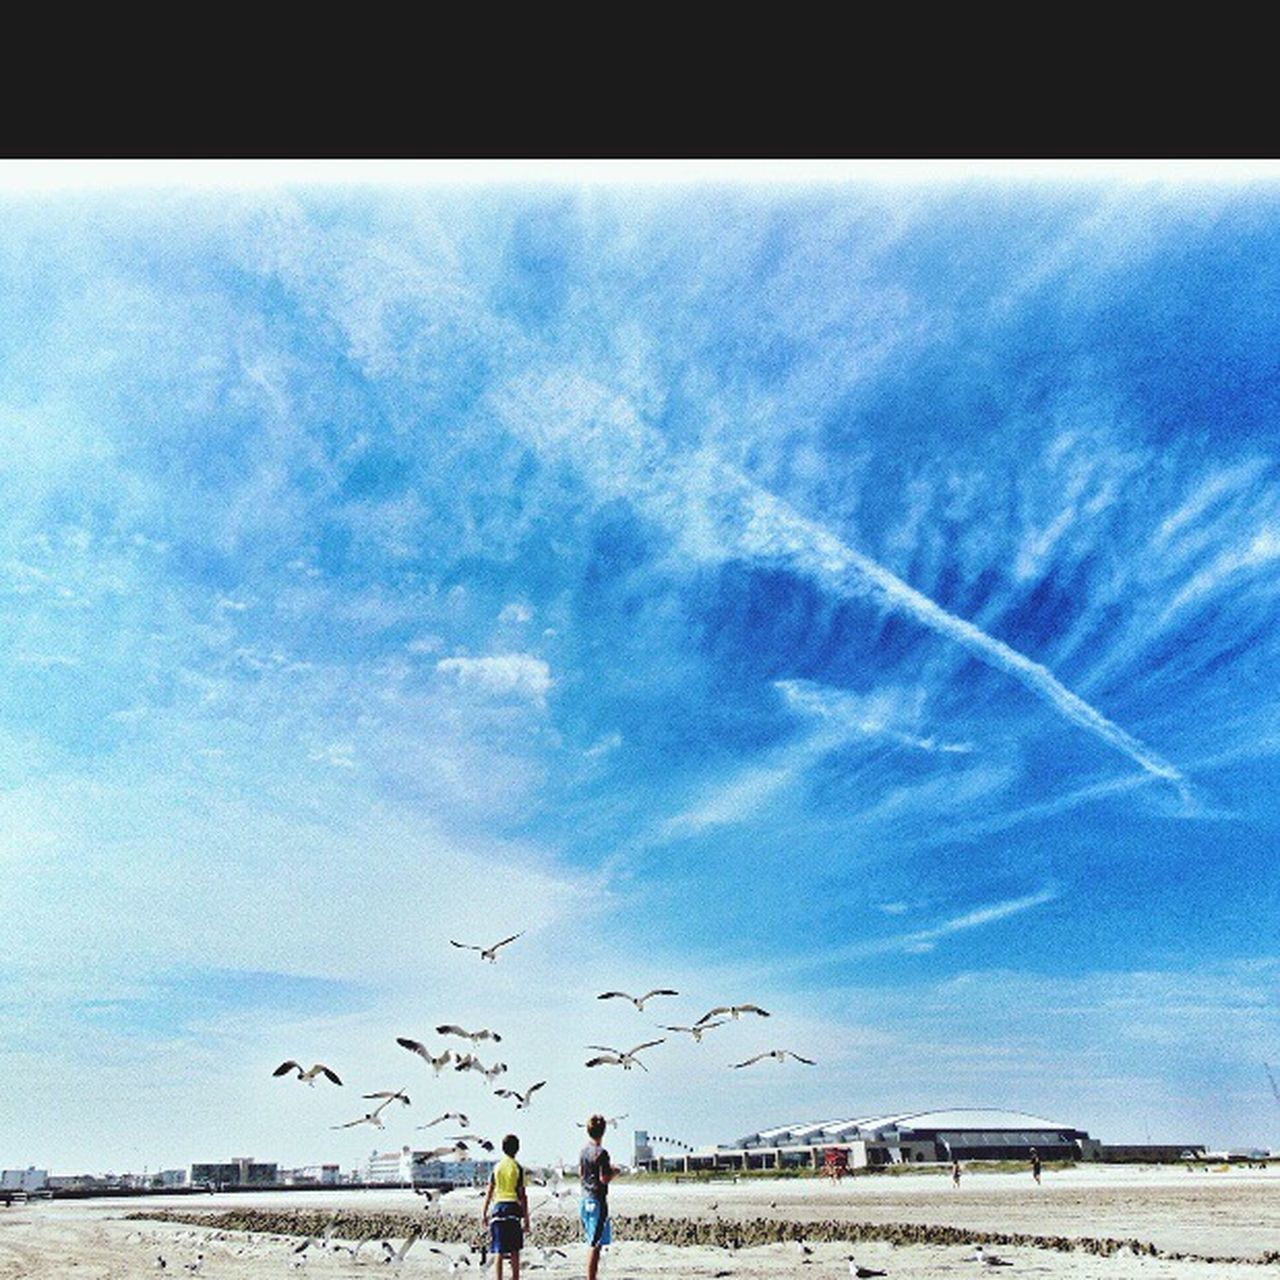 flying, sky, blue, day, large group of animals, large group of people, leisure activity, real people, flock of birds, outdoors, beach, bird, beauty in nature, nature, animal themes, vapor trail, people